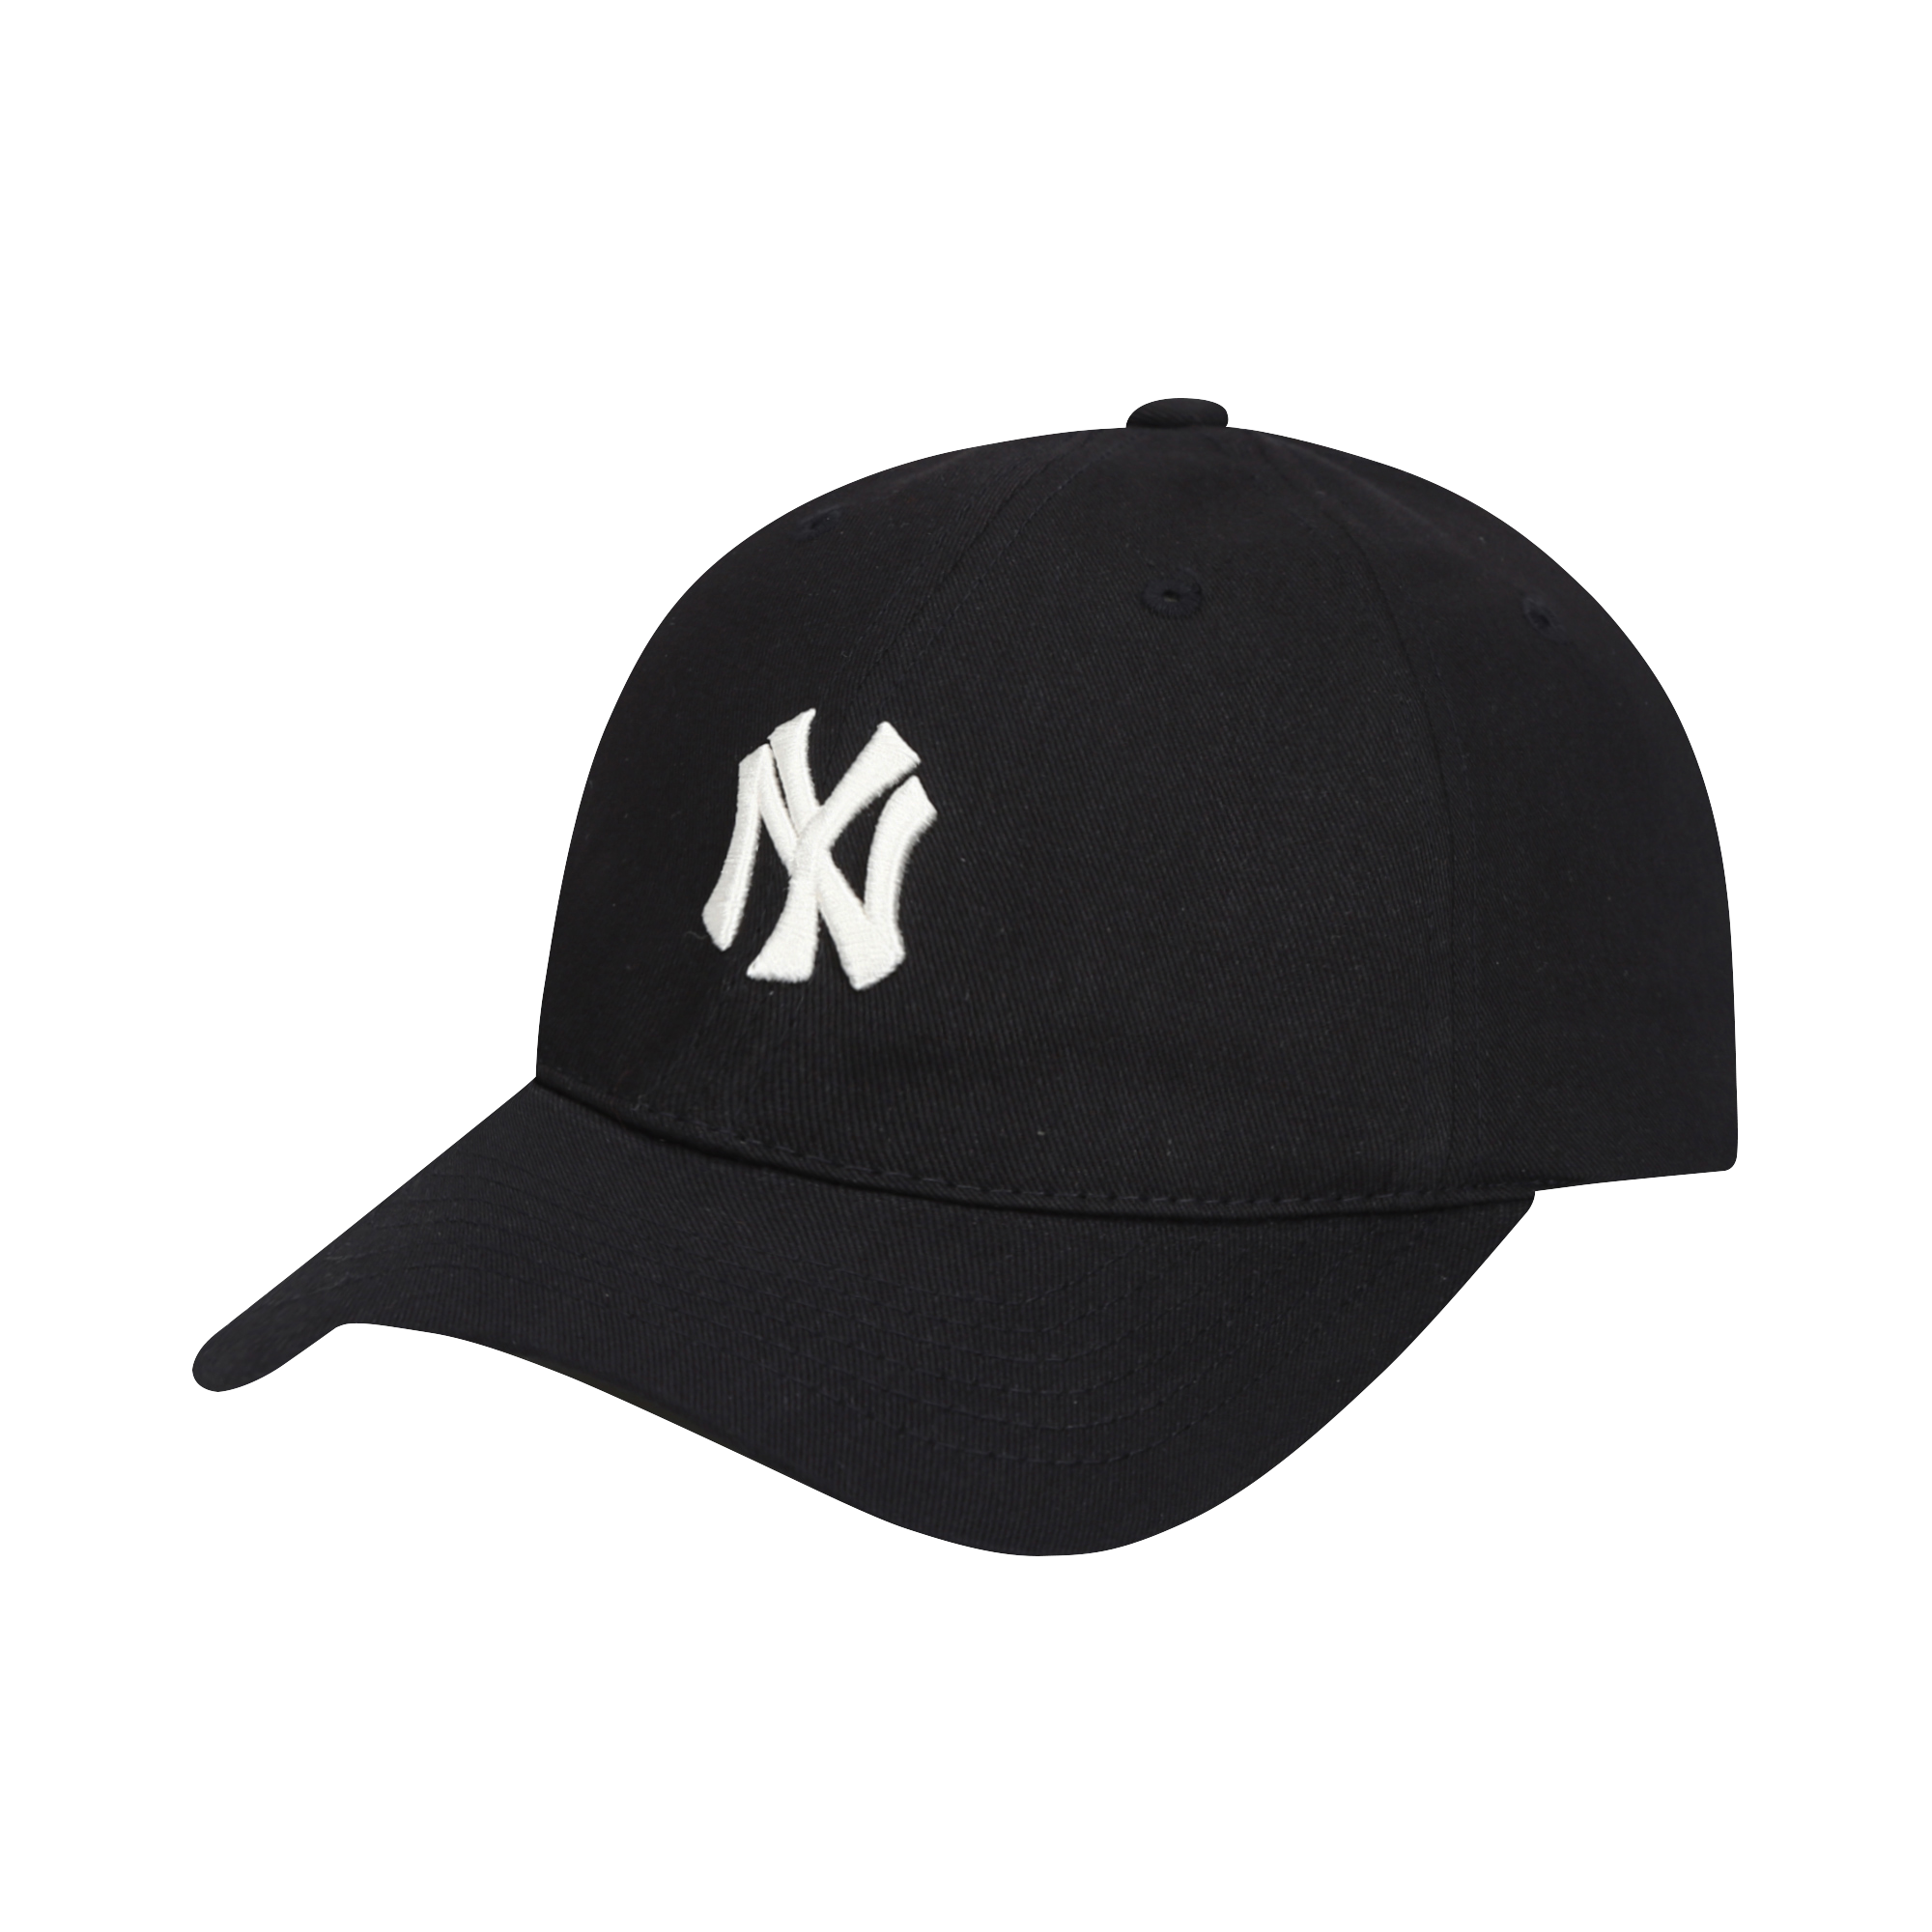 NEW YORK YANKEES TWILL COOPERS BALL CAP